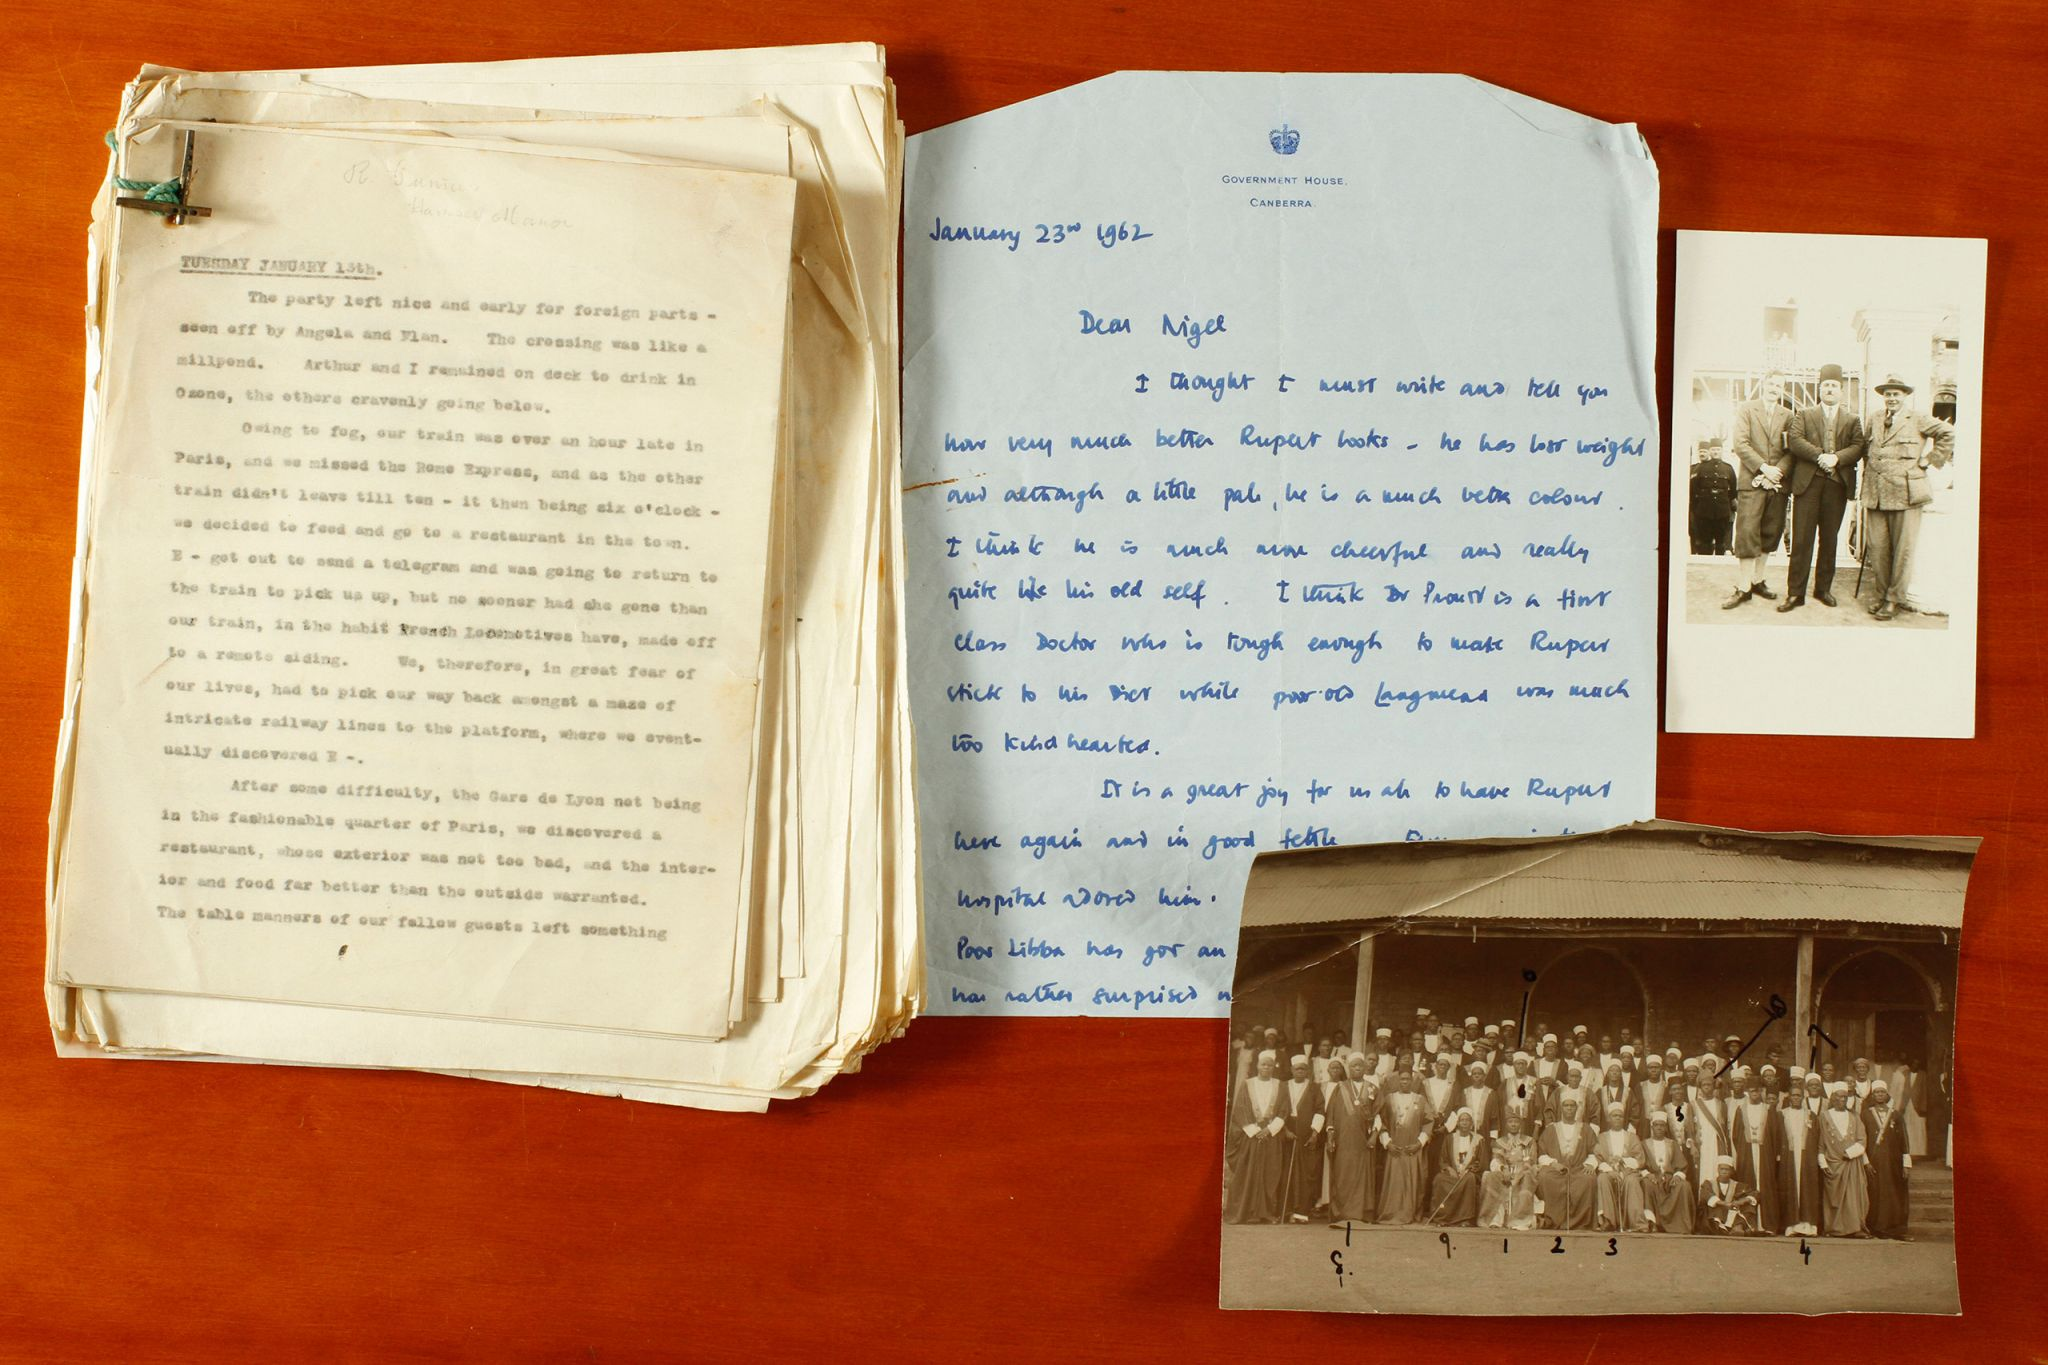 Selection of material from the Rupert Gunnis archive, including notes written by Gunnis; a letter written by Rupert Gunnis to his brother Nigel; a photograph of Gunnis used as a postcard; and an annoted photograph, 'The Four Kings'